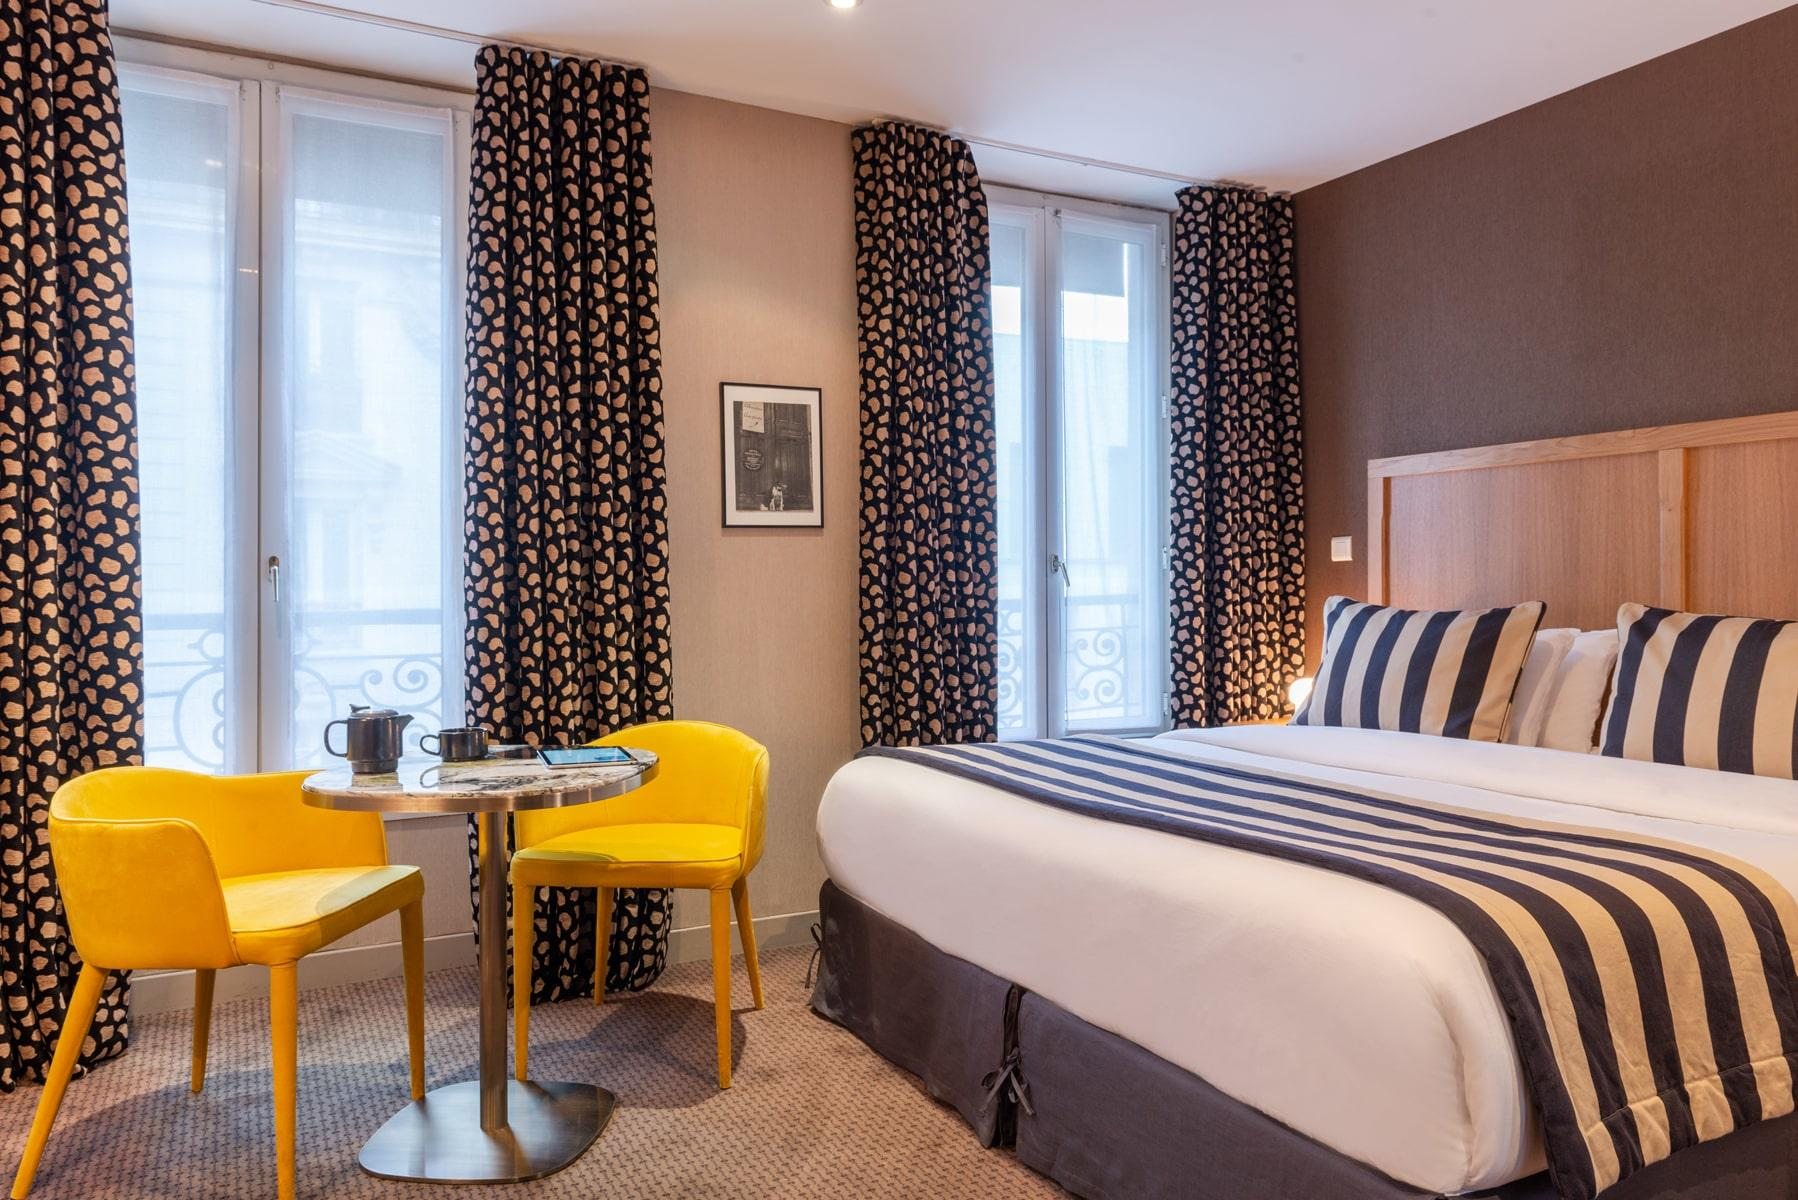 87/__HAPIDAM__rollback/hotel-29-lepic-chambre-double-sup-min-602d42bcd609a808778977.jpg